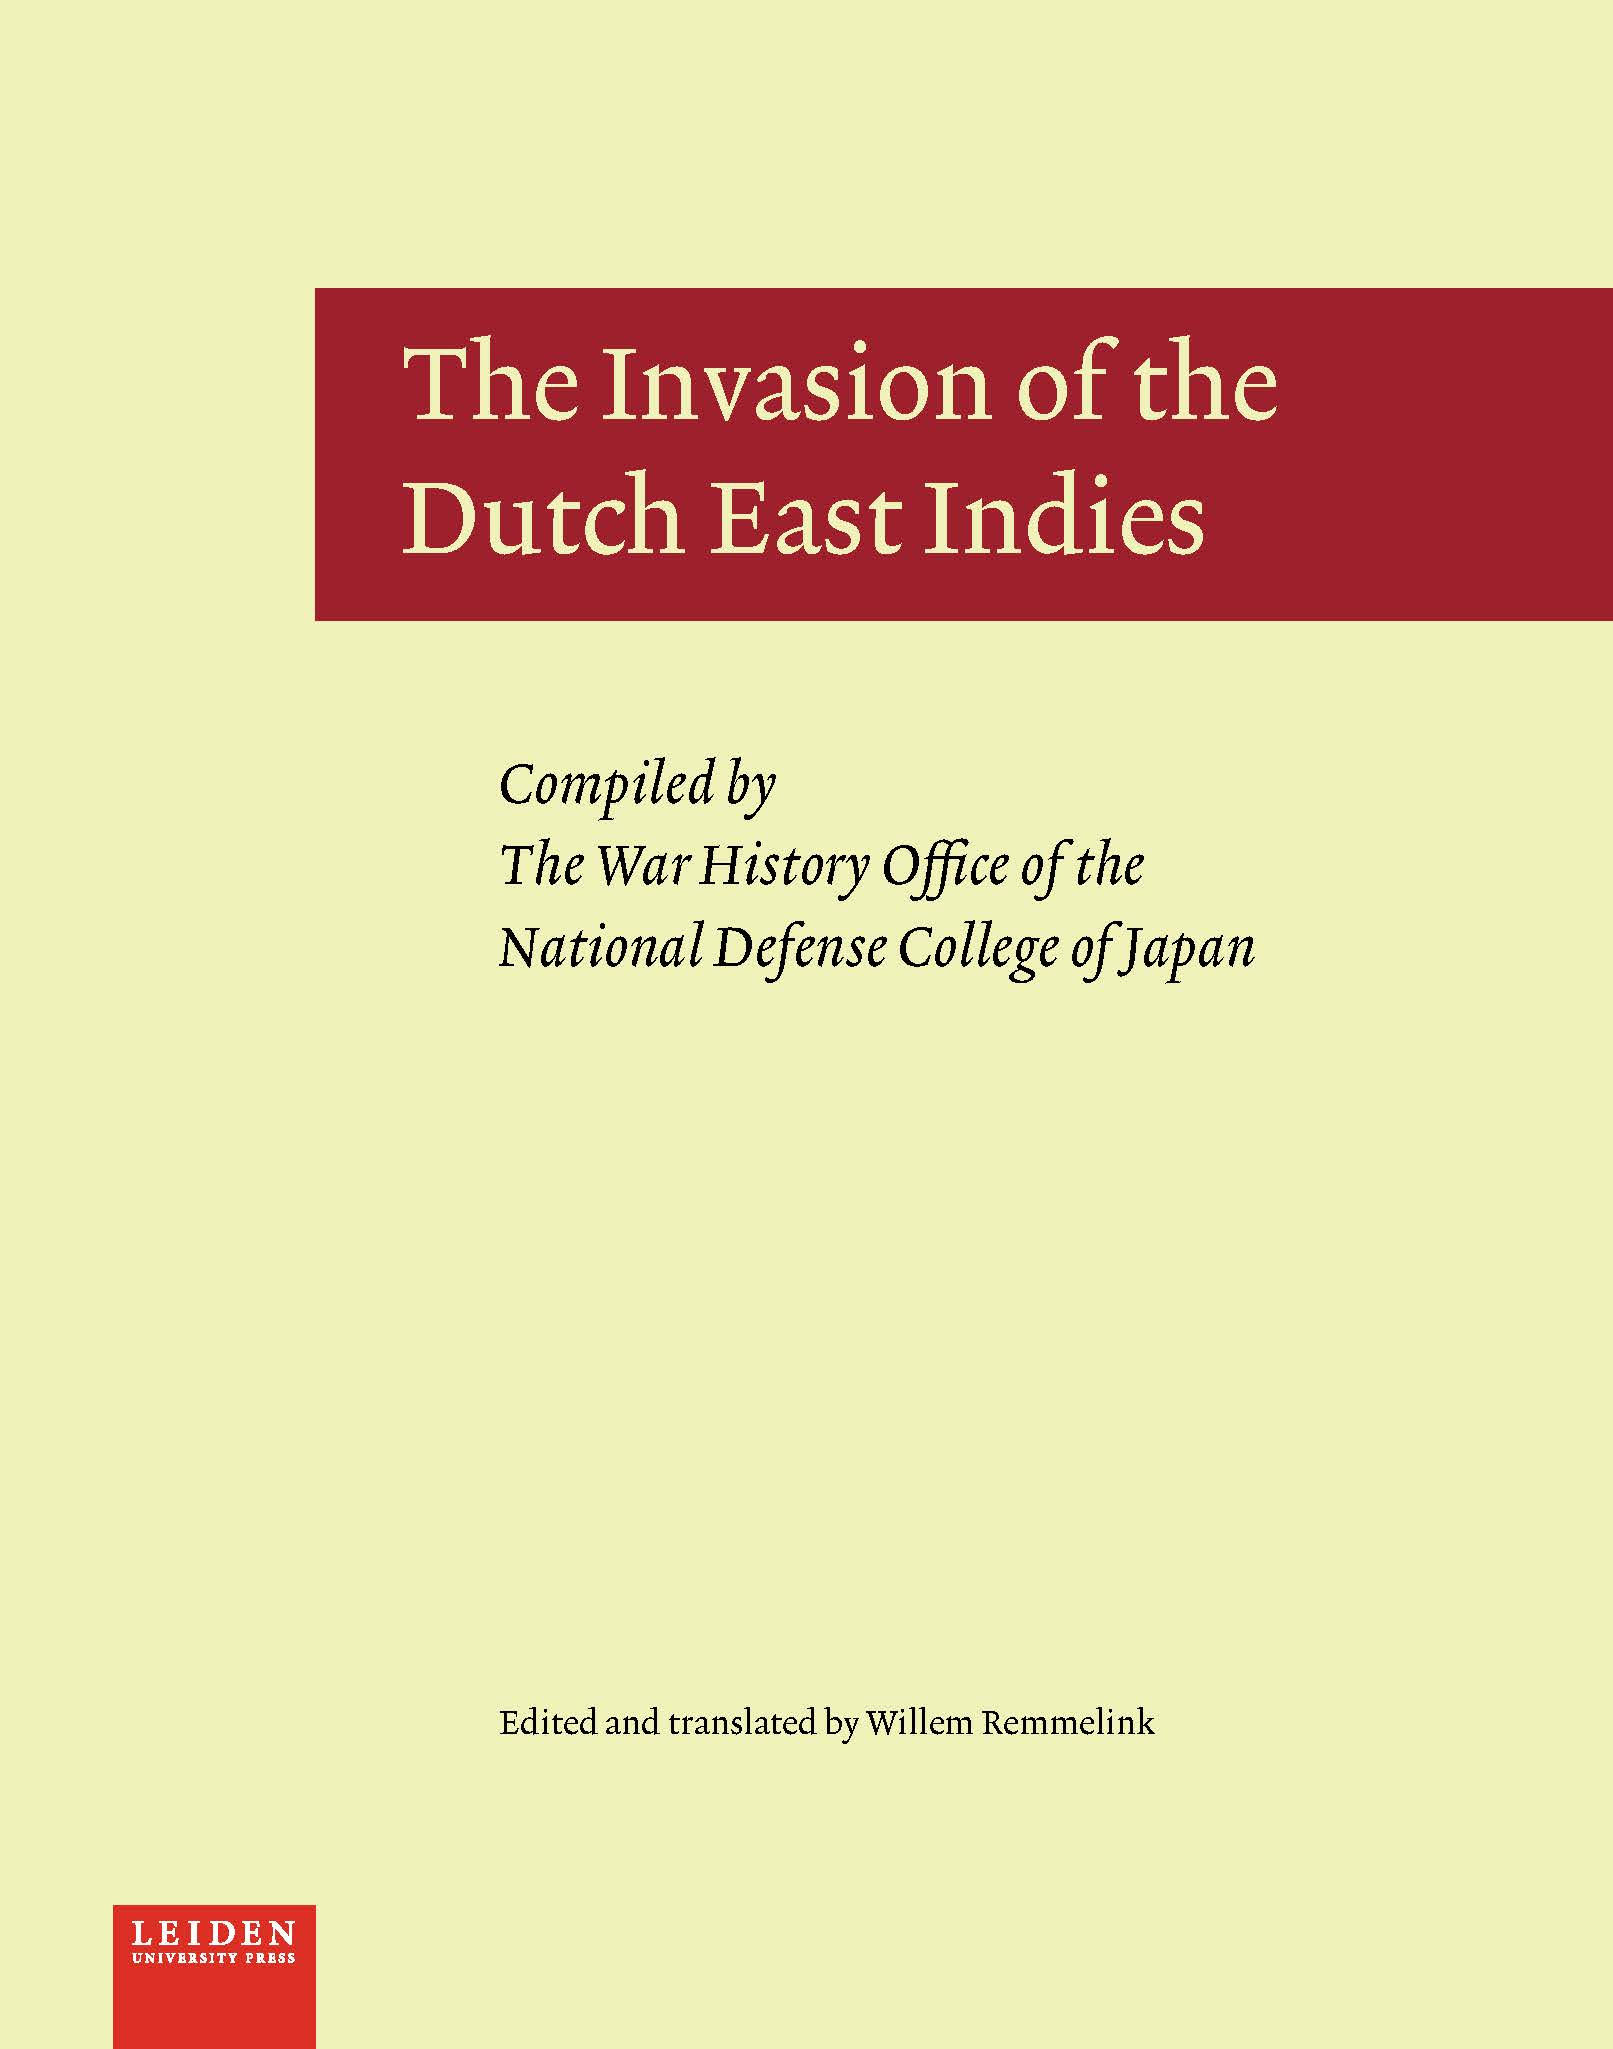 The Invasion of the Dutcch East Indies